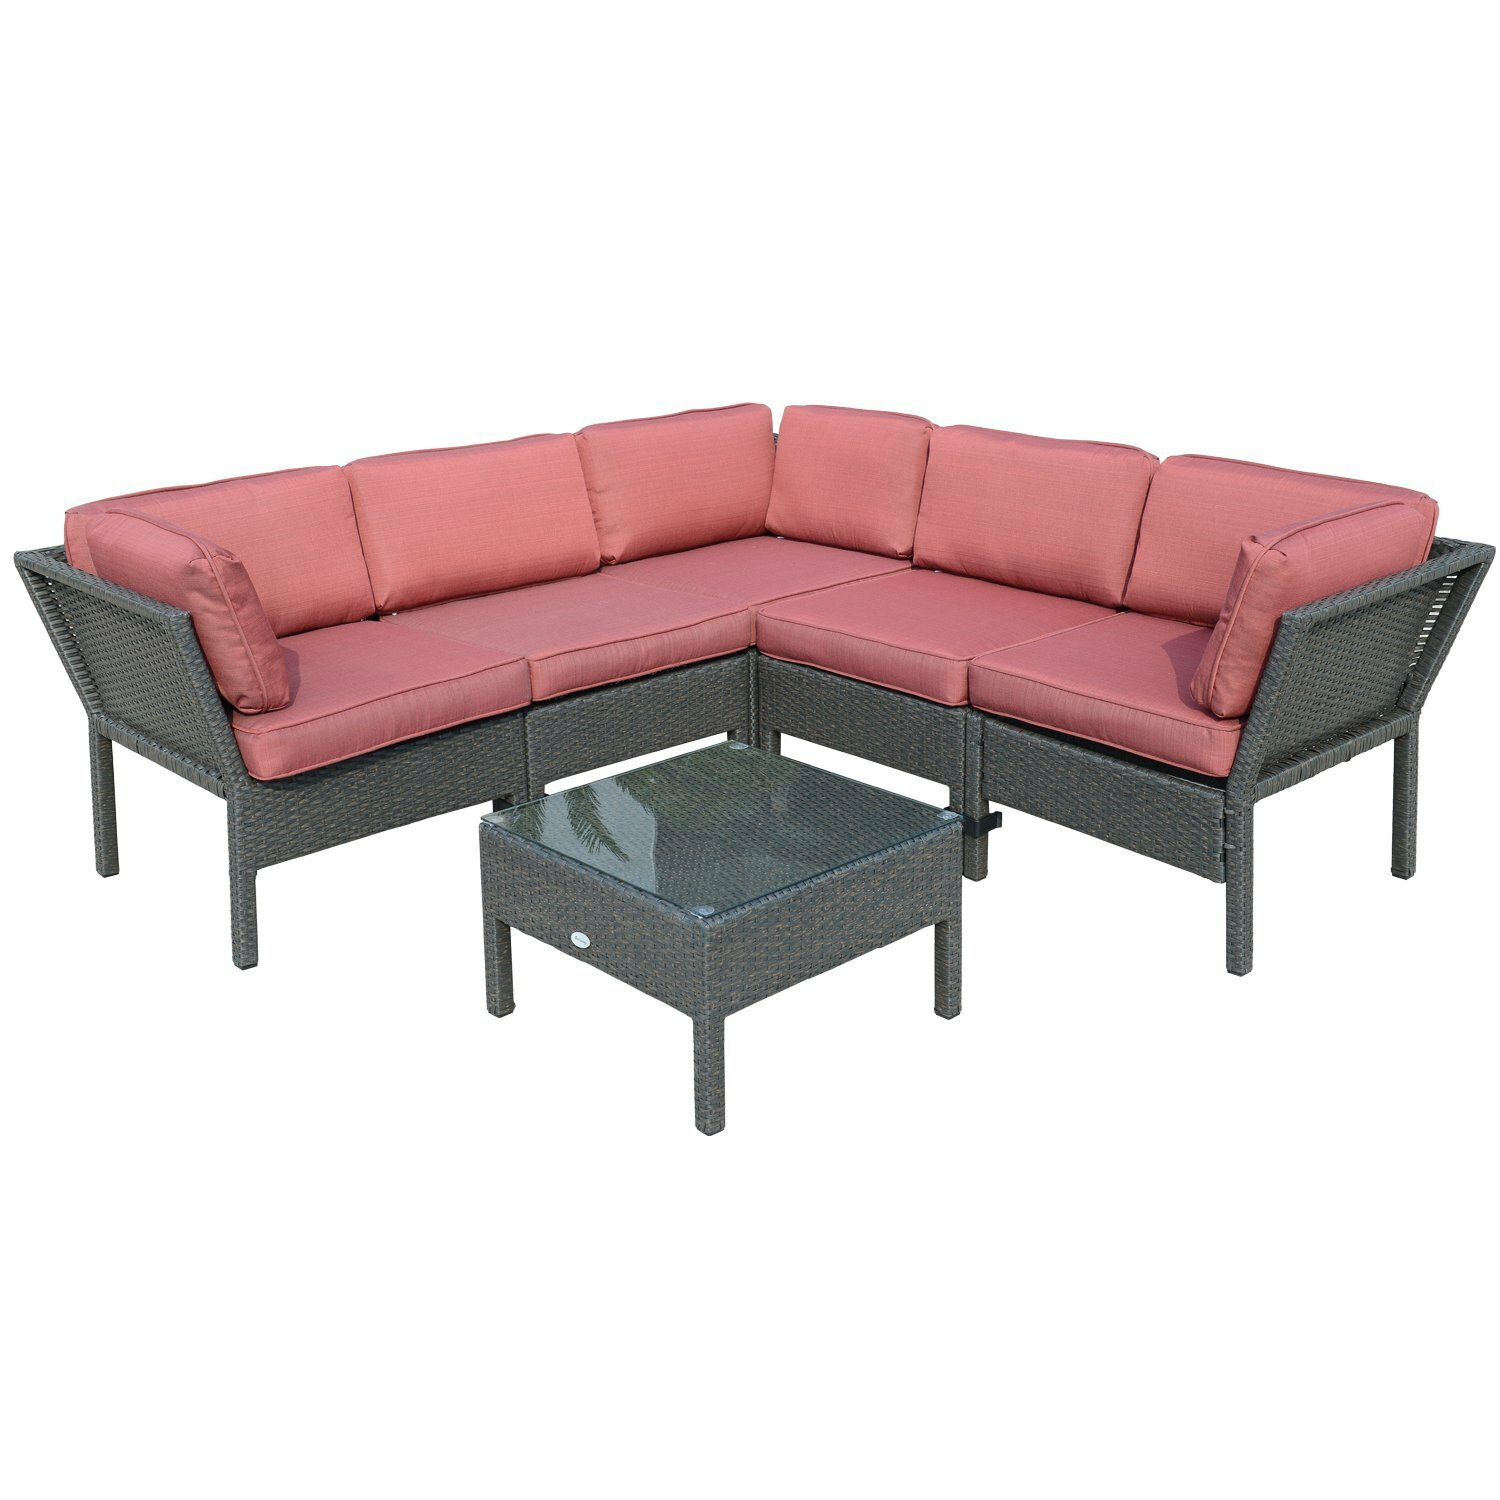 Outsunny patio replacement cushions outsunny 3 seater for Aosom llc outsunny chaise lounge